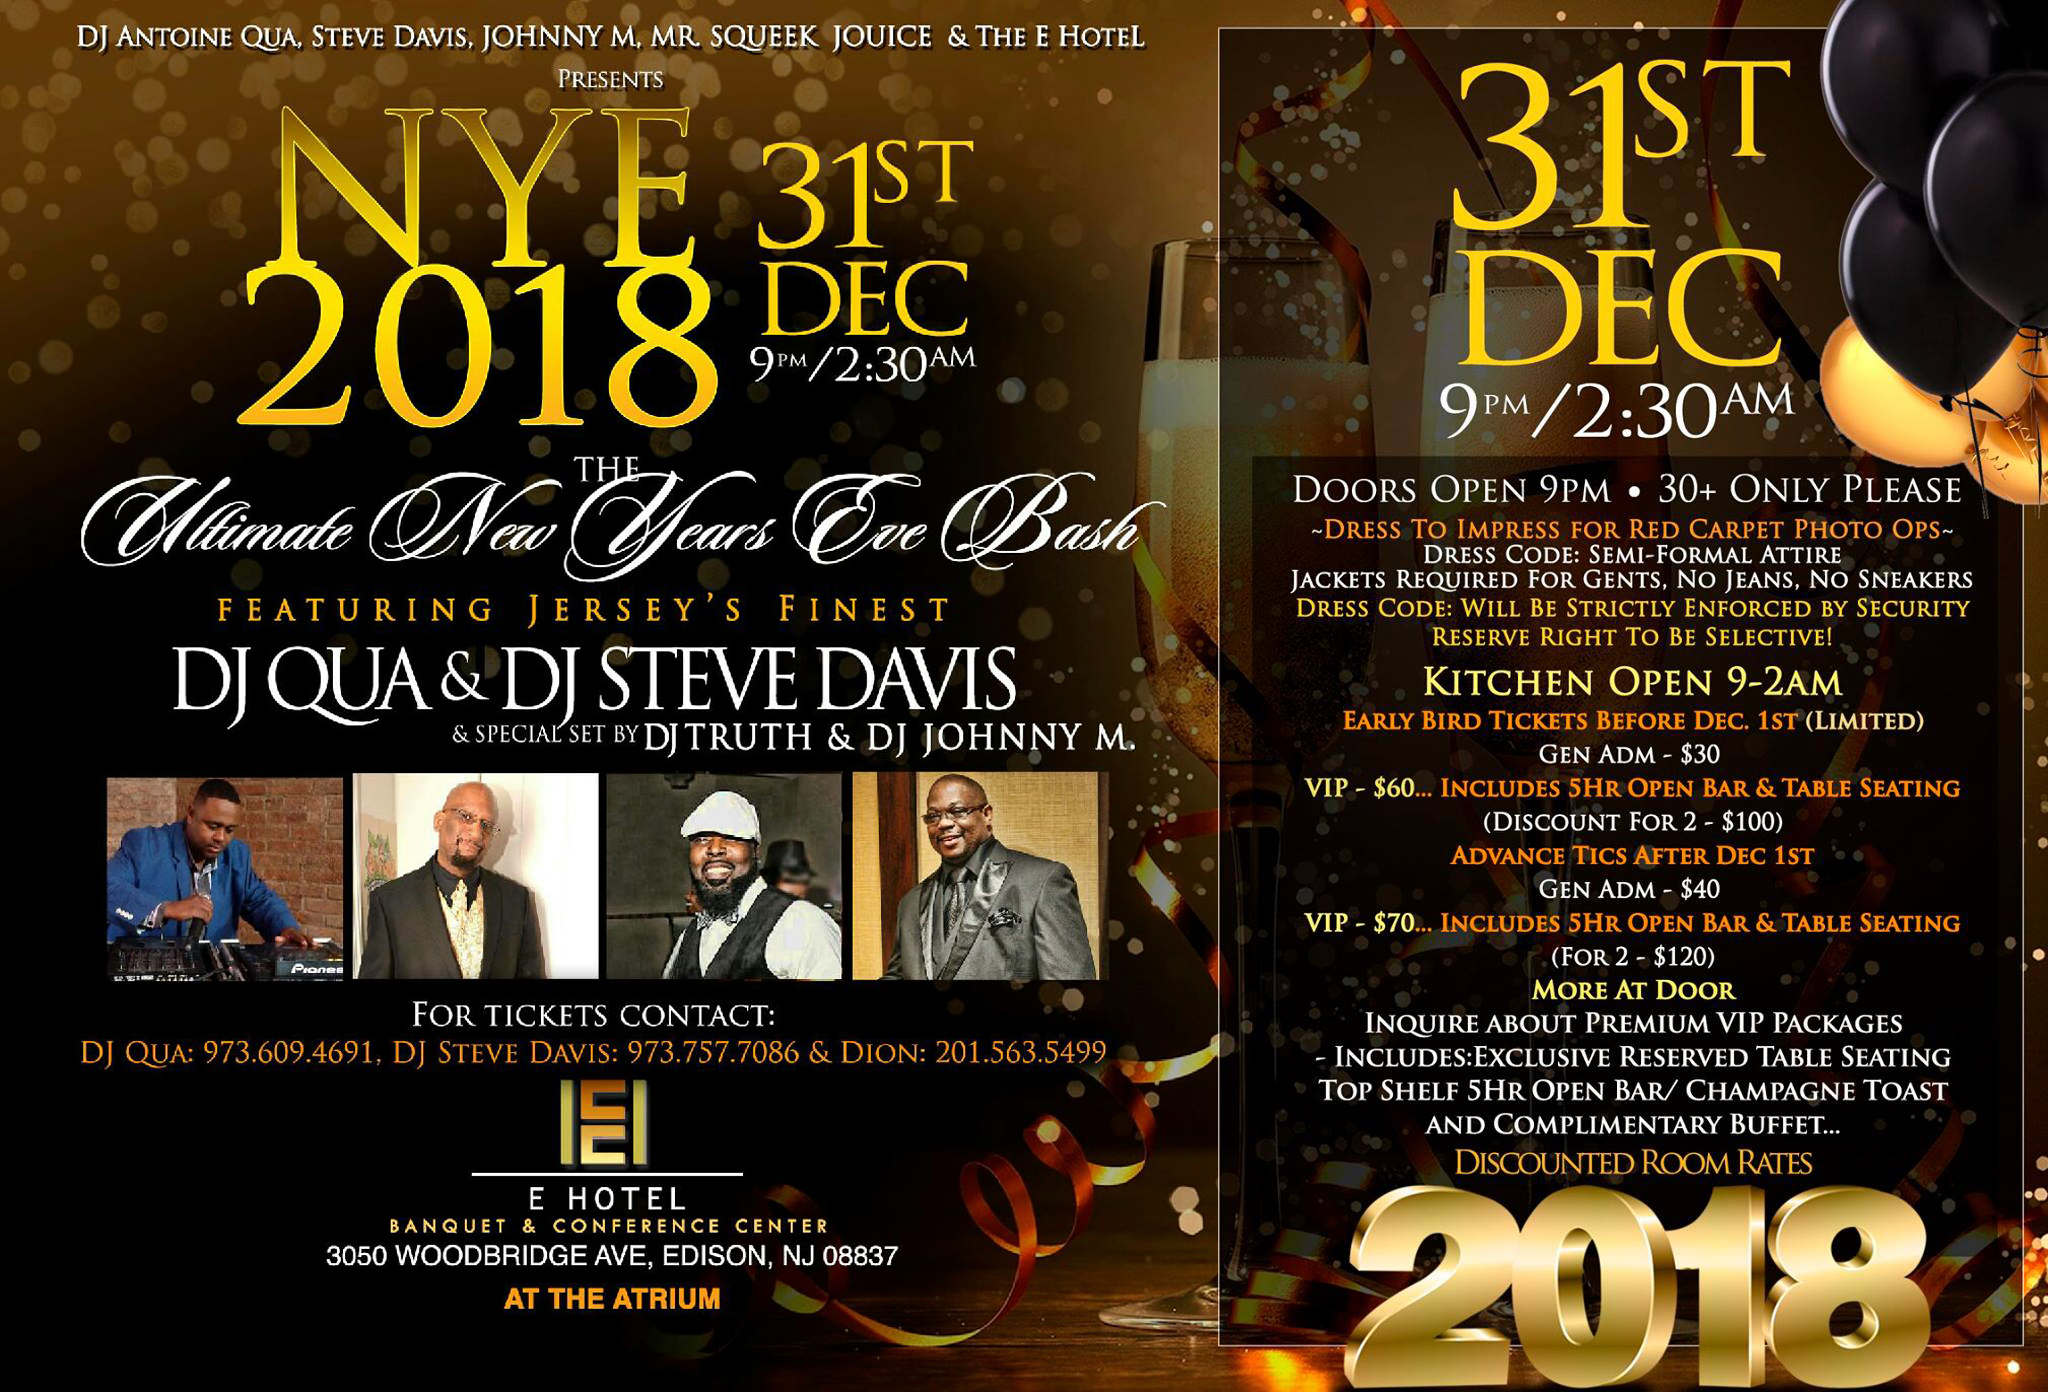 NYE 2018 Gala with DJ Qua, Steve Davis, DJ Johnny M,  & DJ Truth!